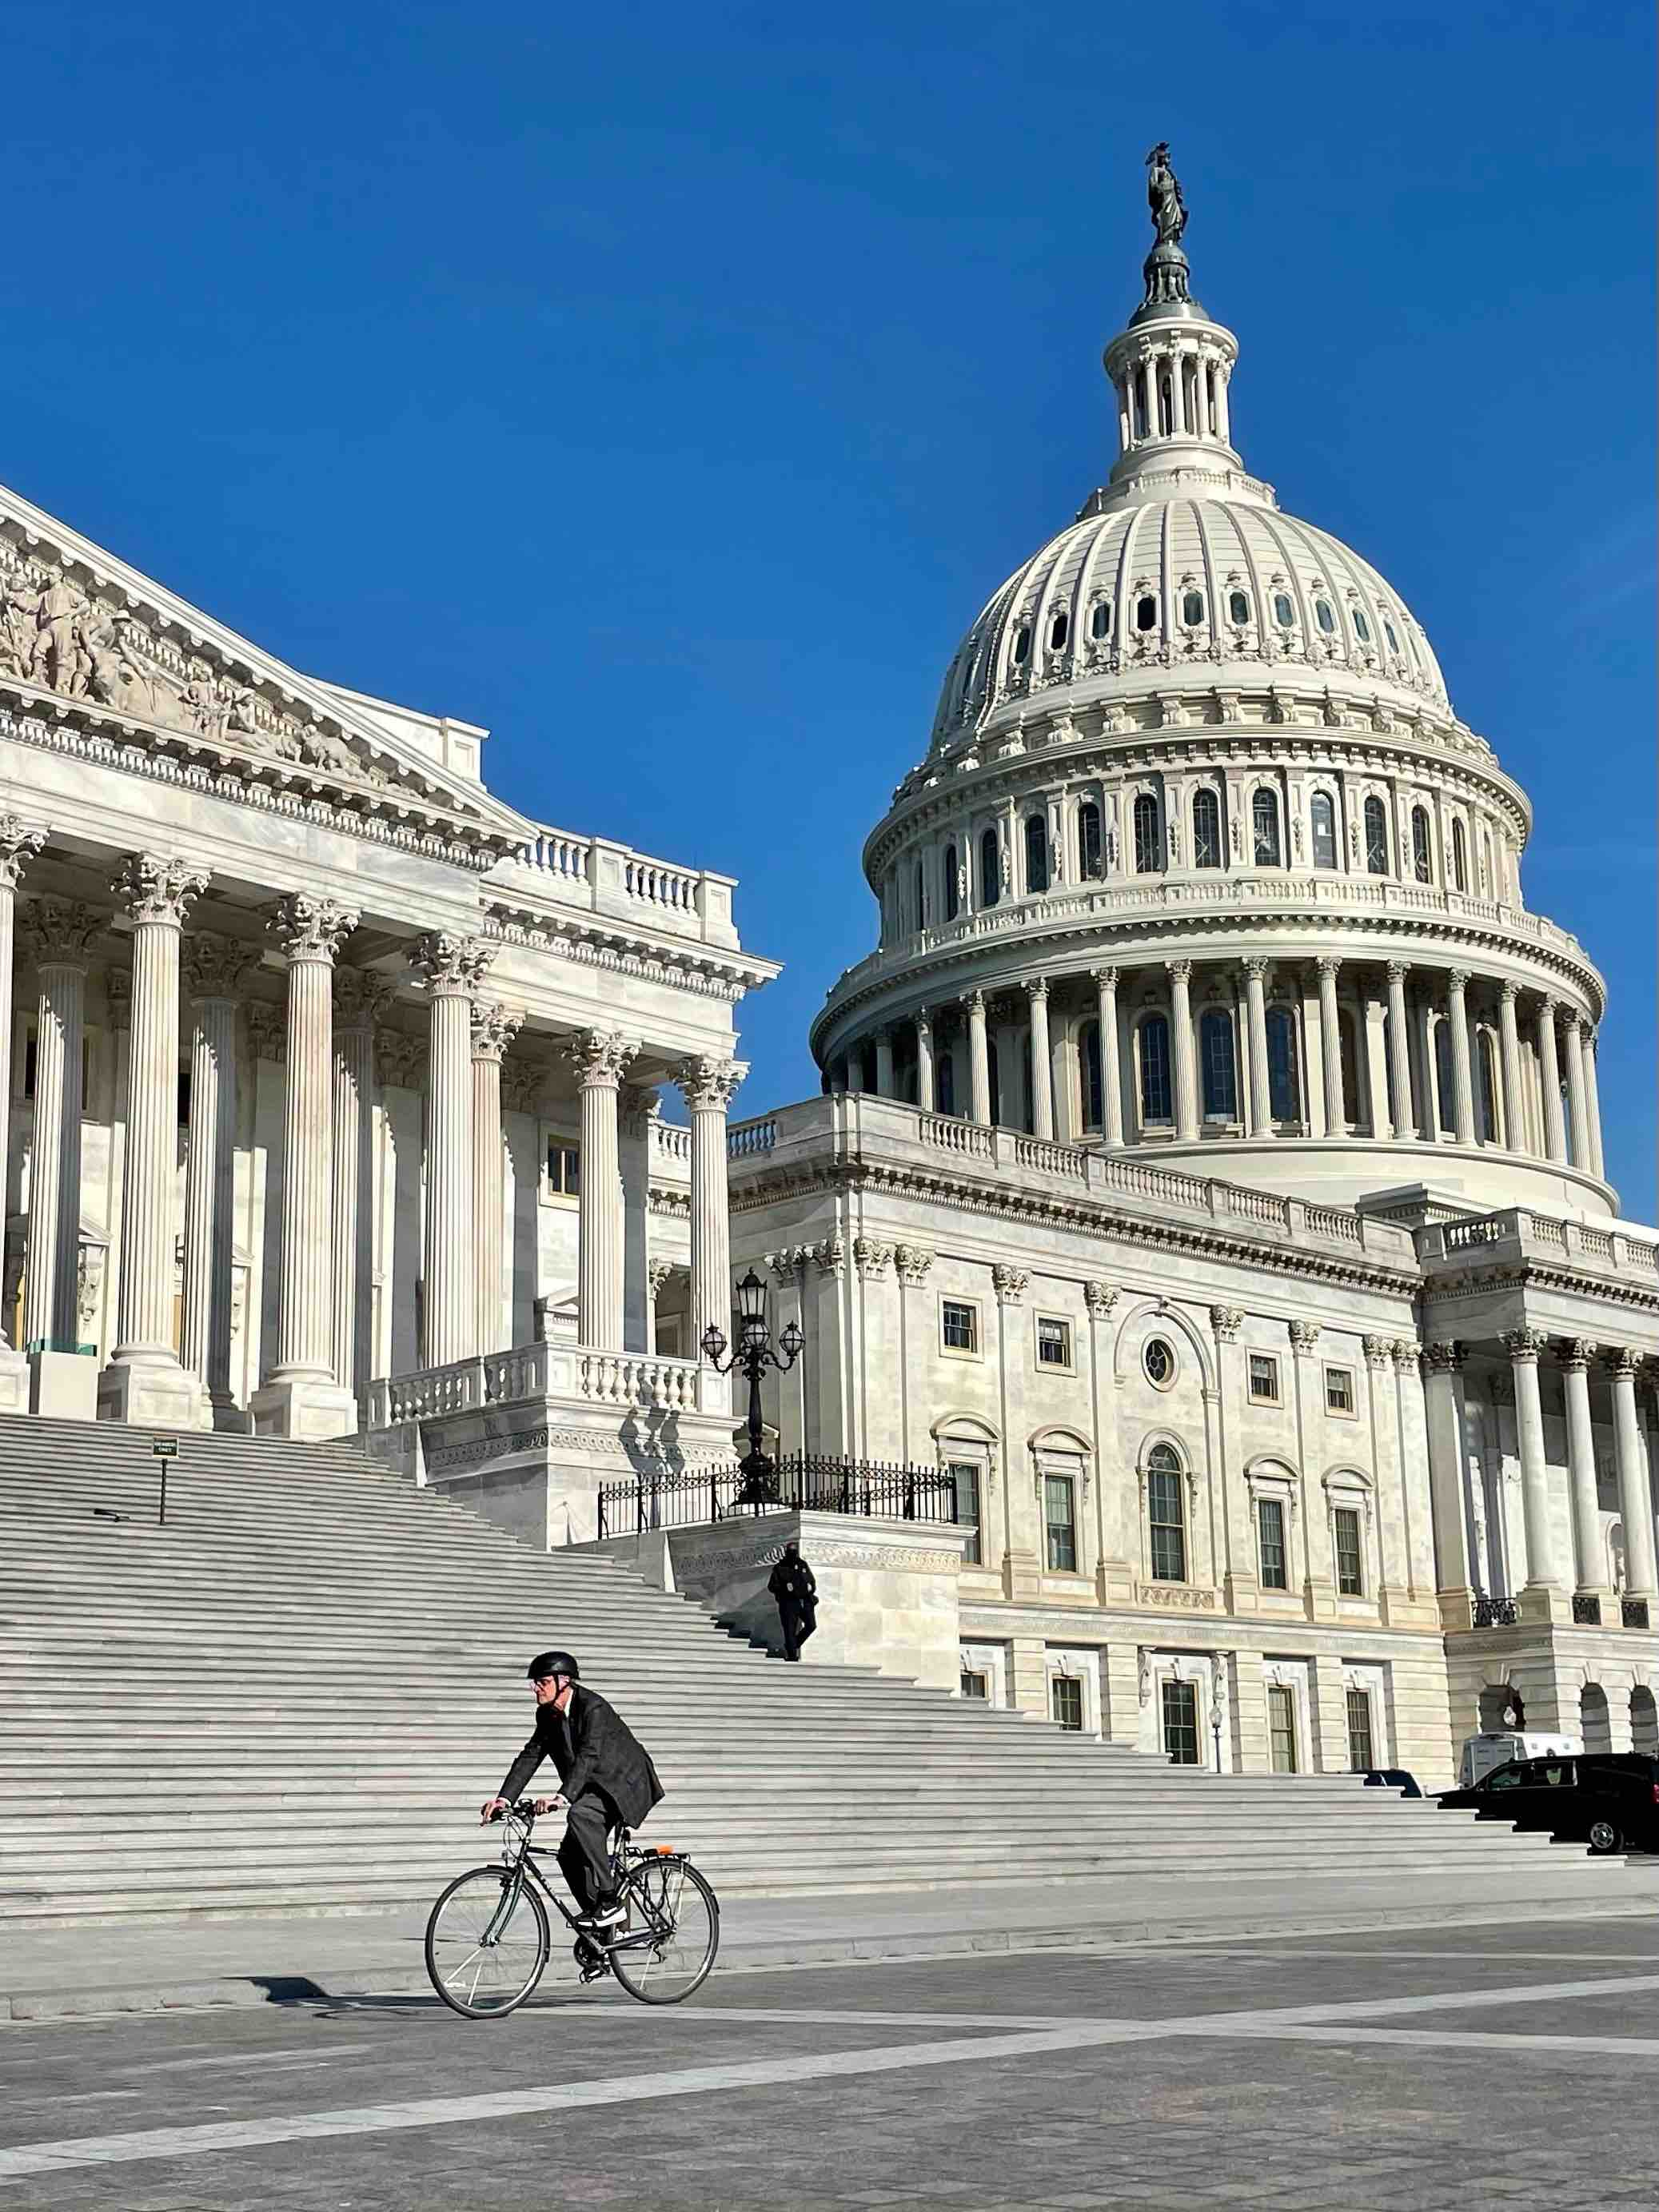 Rep. Earl Blumenauer arriving at the U.S. Capitol on his bike.